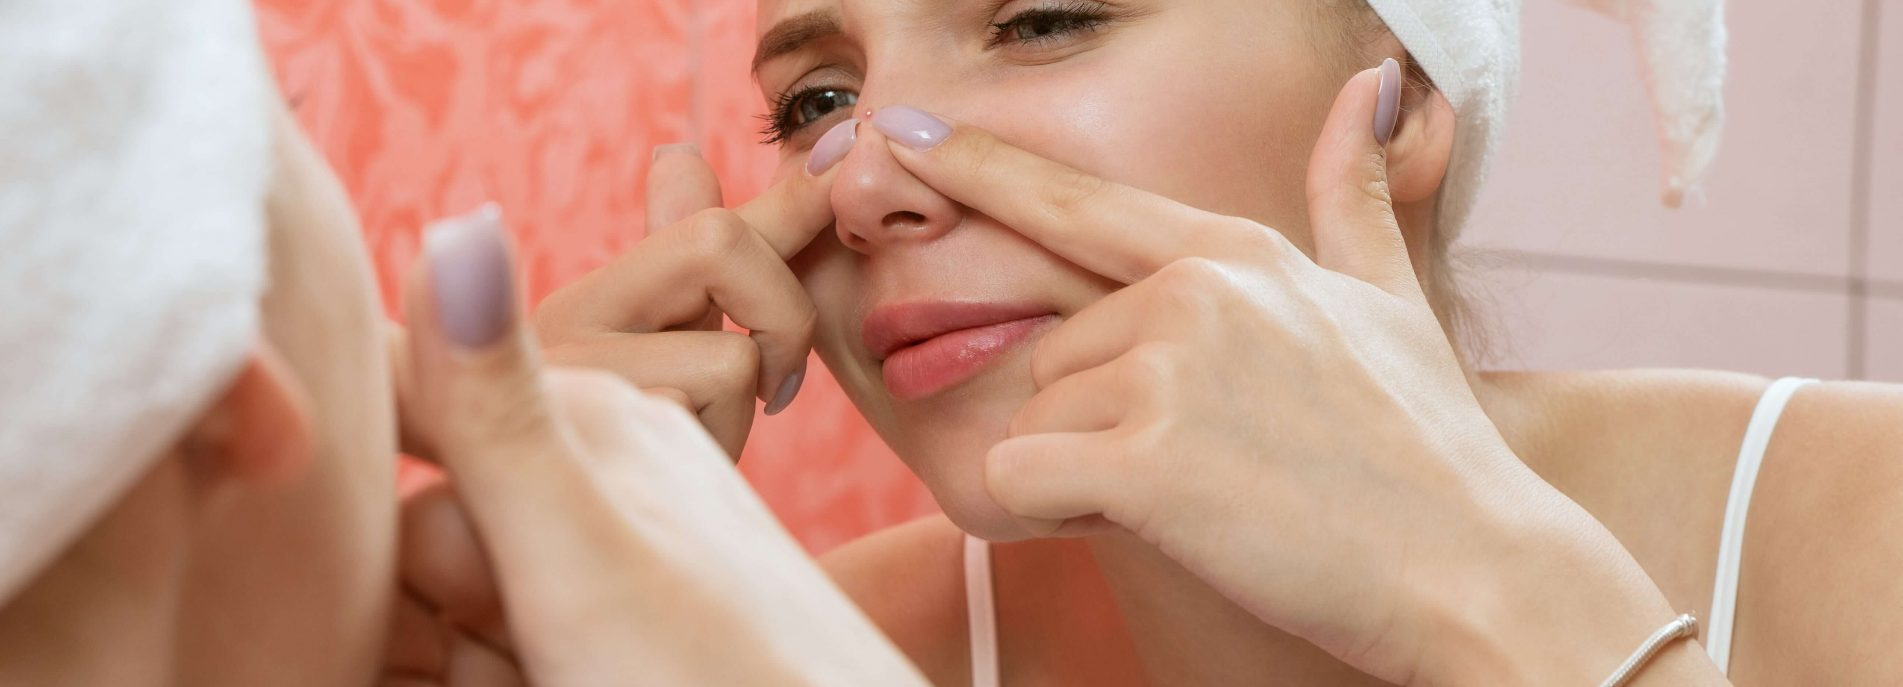 How to get rid of pimples naturally? 5 top ways